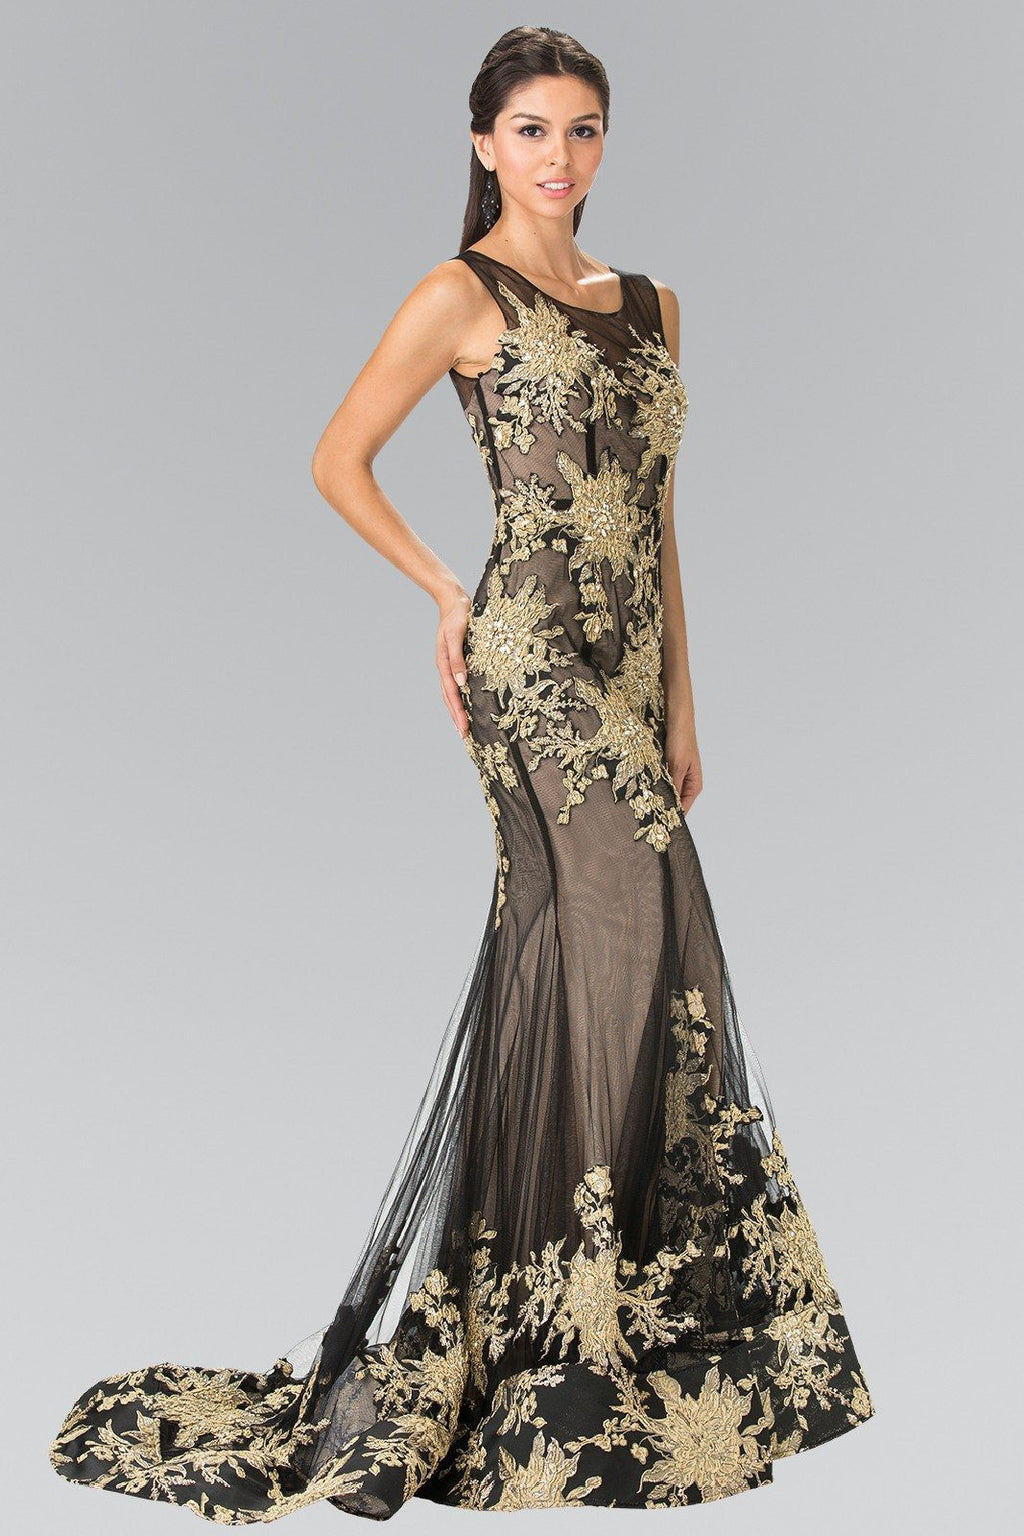 Cheap Glamorous Lace Mermaid Prom dress #GL2335 - Simply Fab Dress